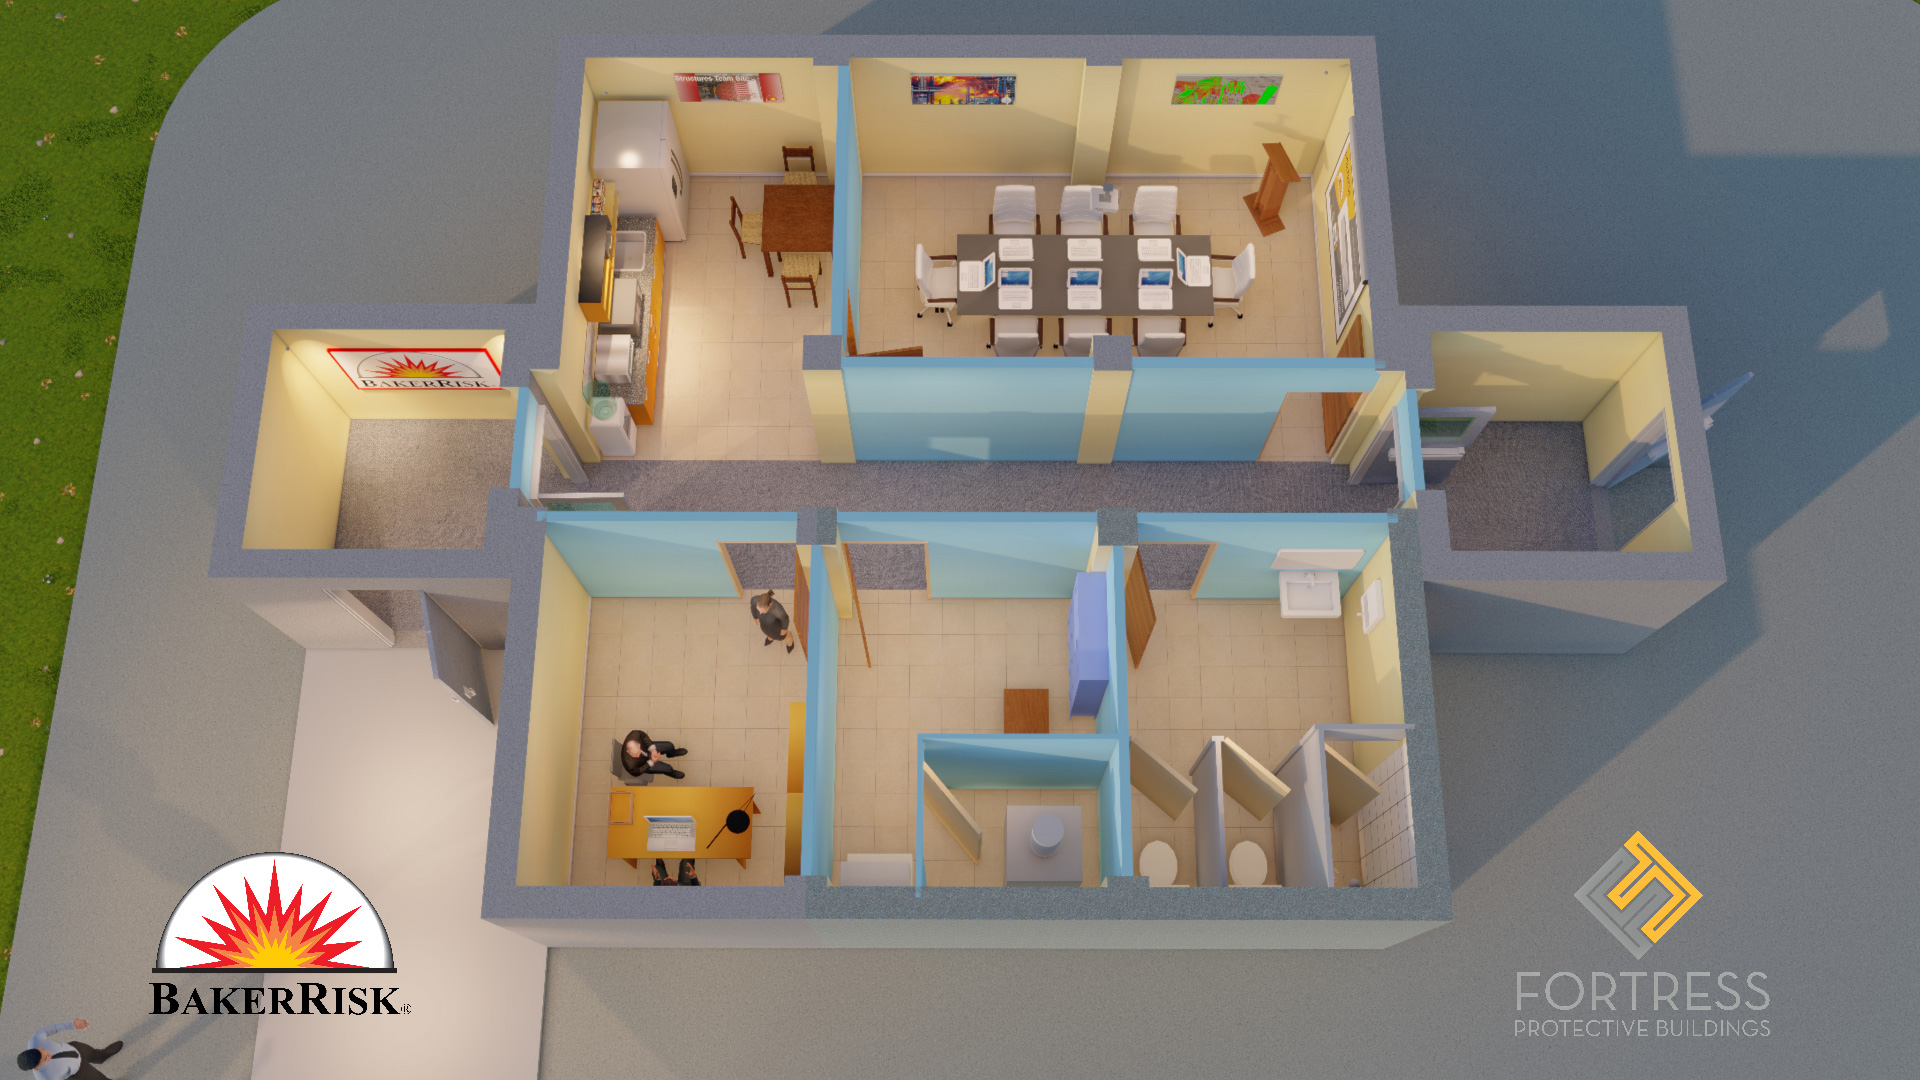 FORTRESS Interior Layout-Conference Wall Partition